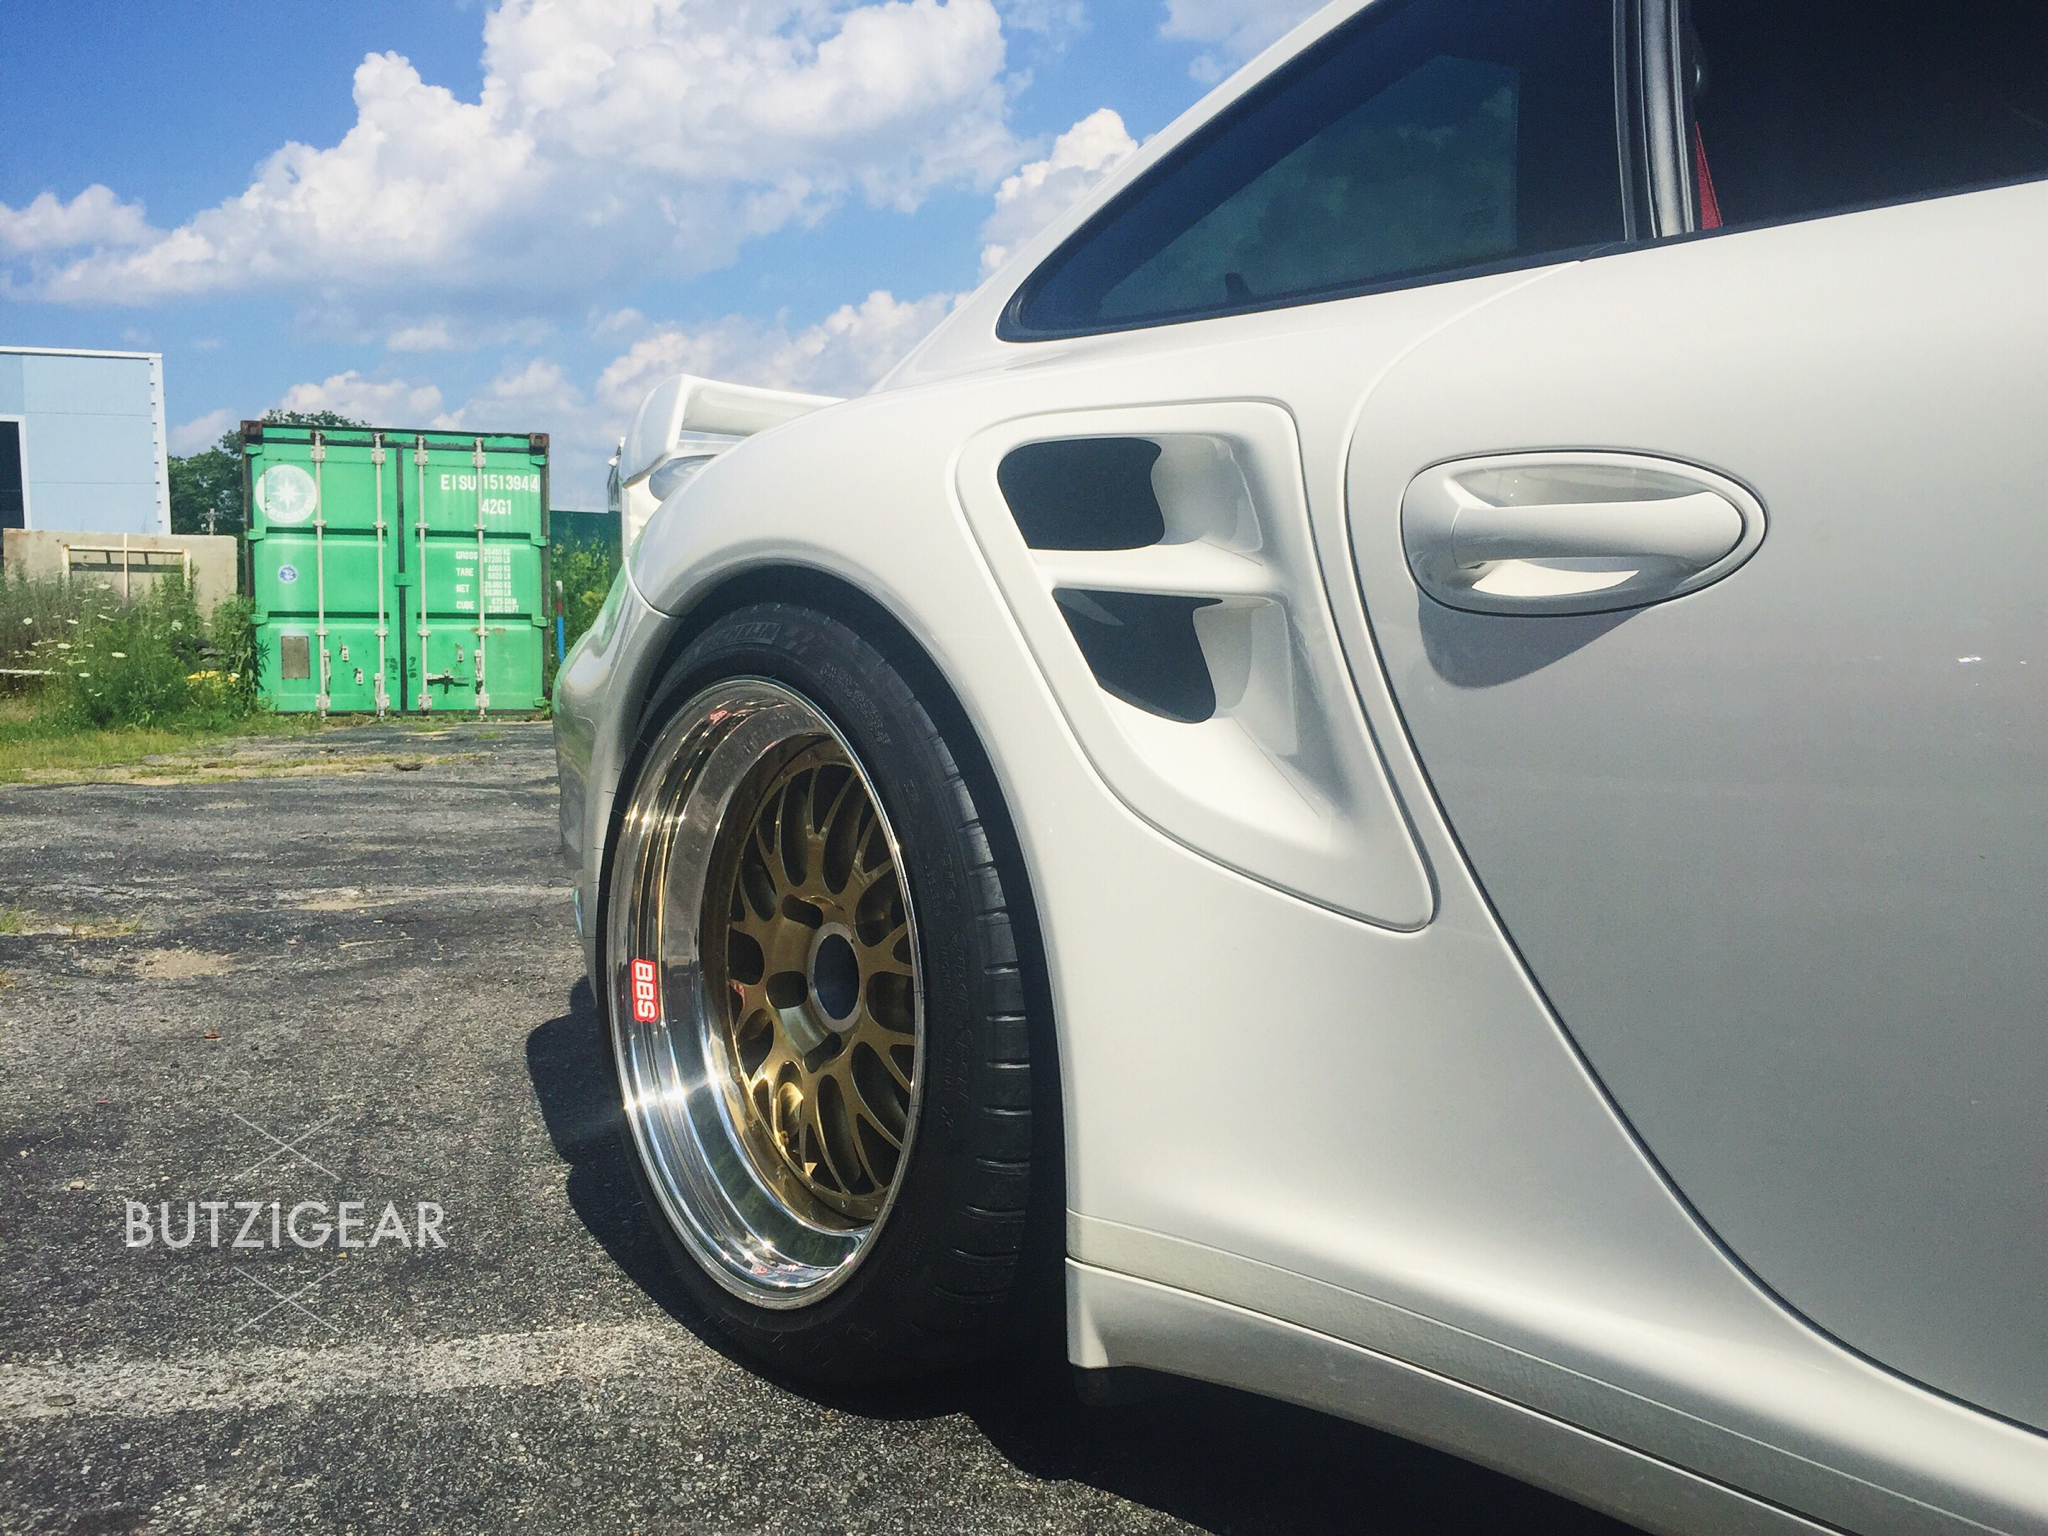 Bbs Motorsport Wheels Porsche 997 Bbs E88 Butzi Gear